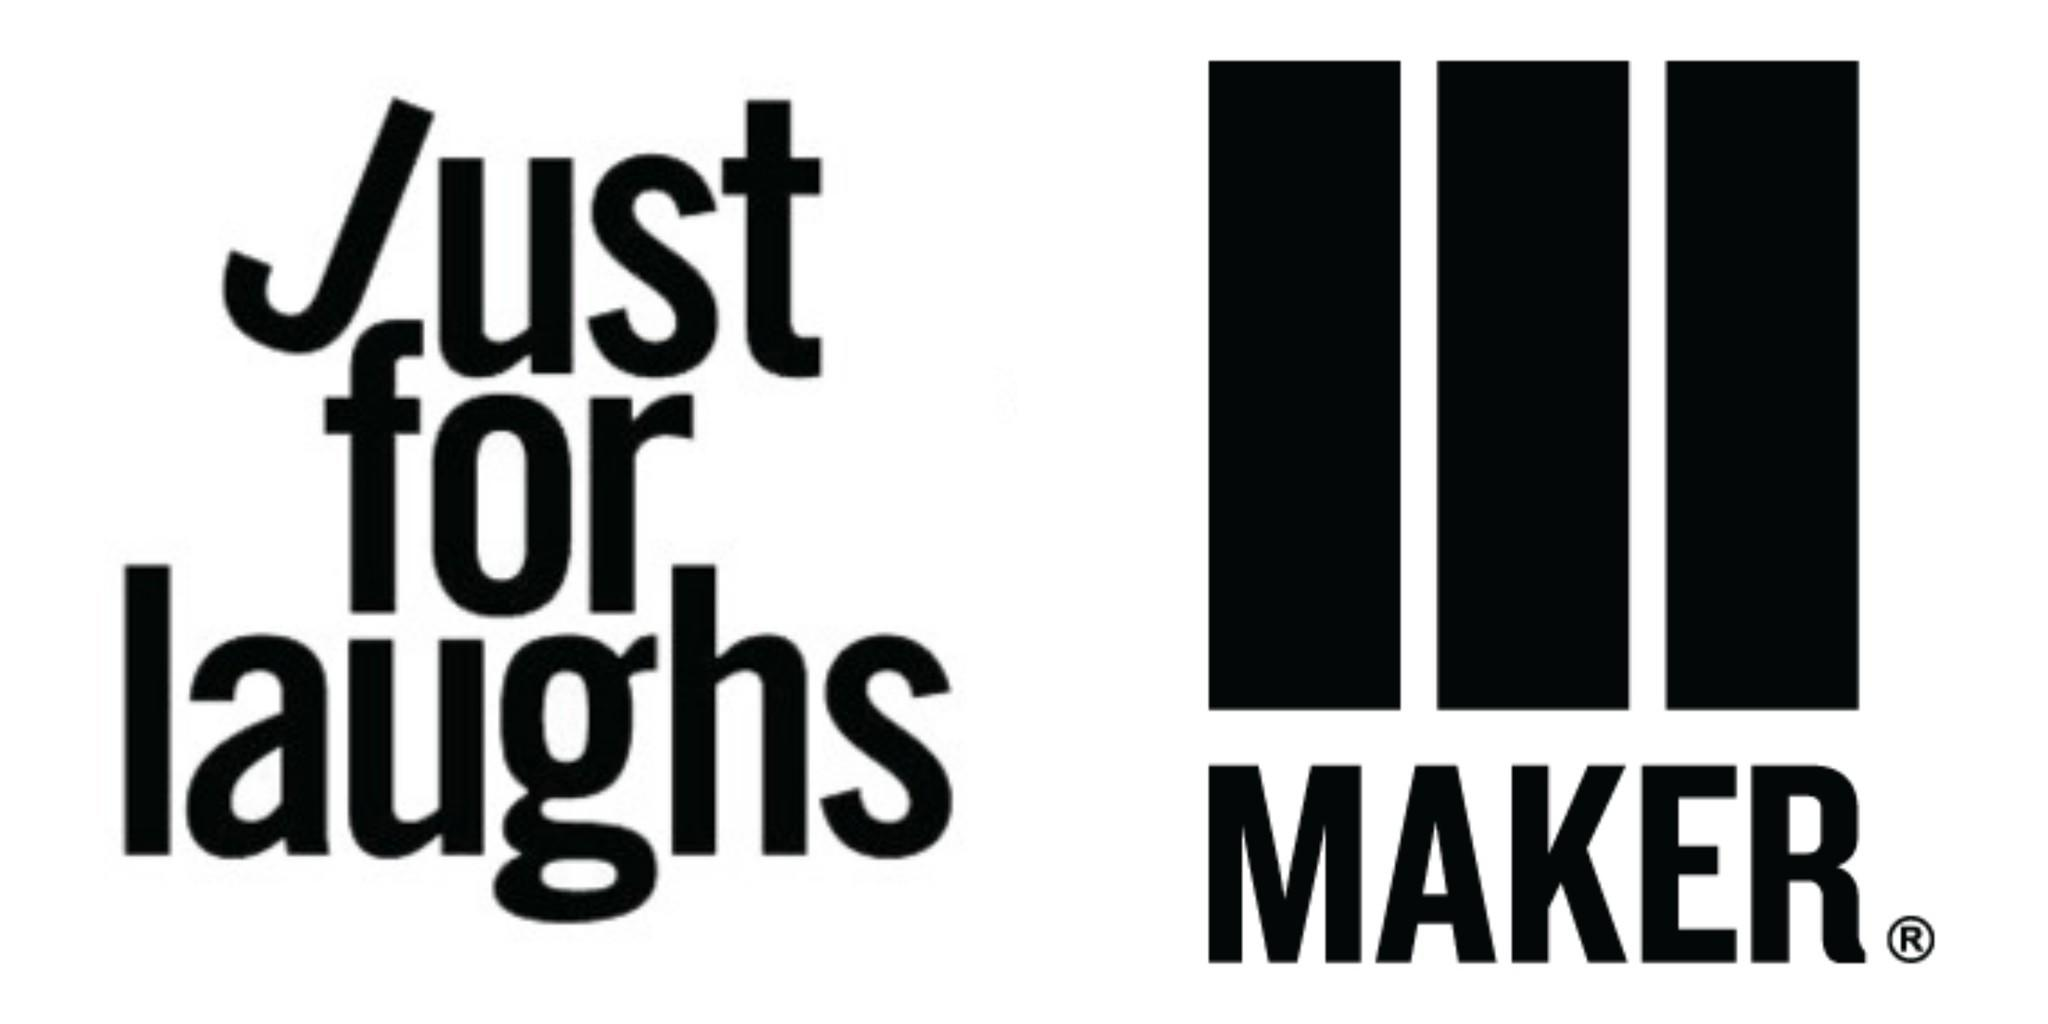 Maker Studios Partners With Just For Laughs Latimes